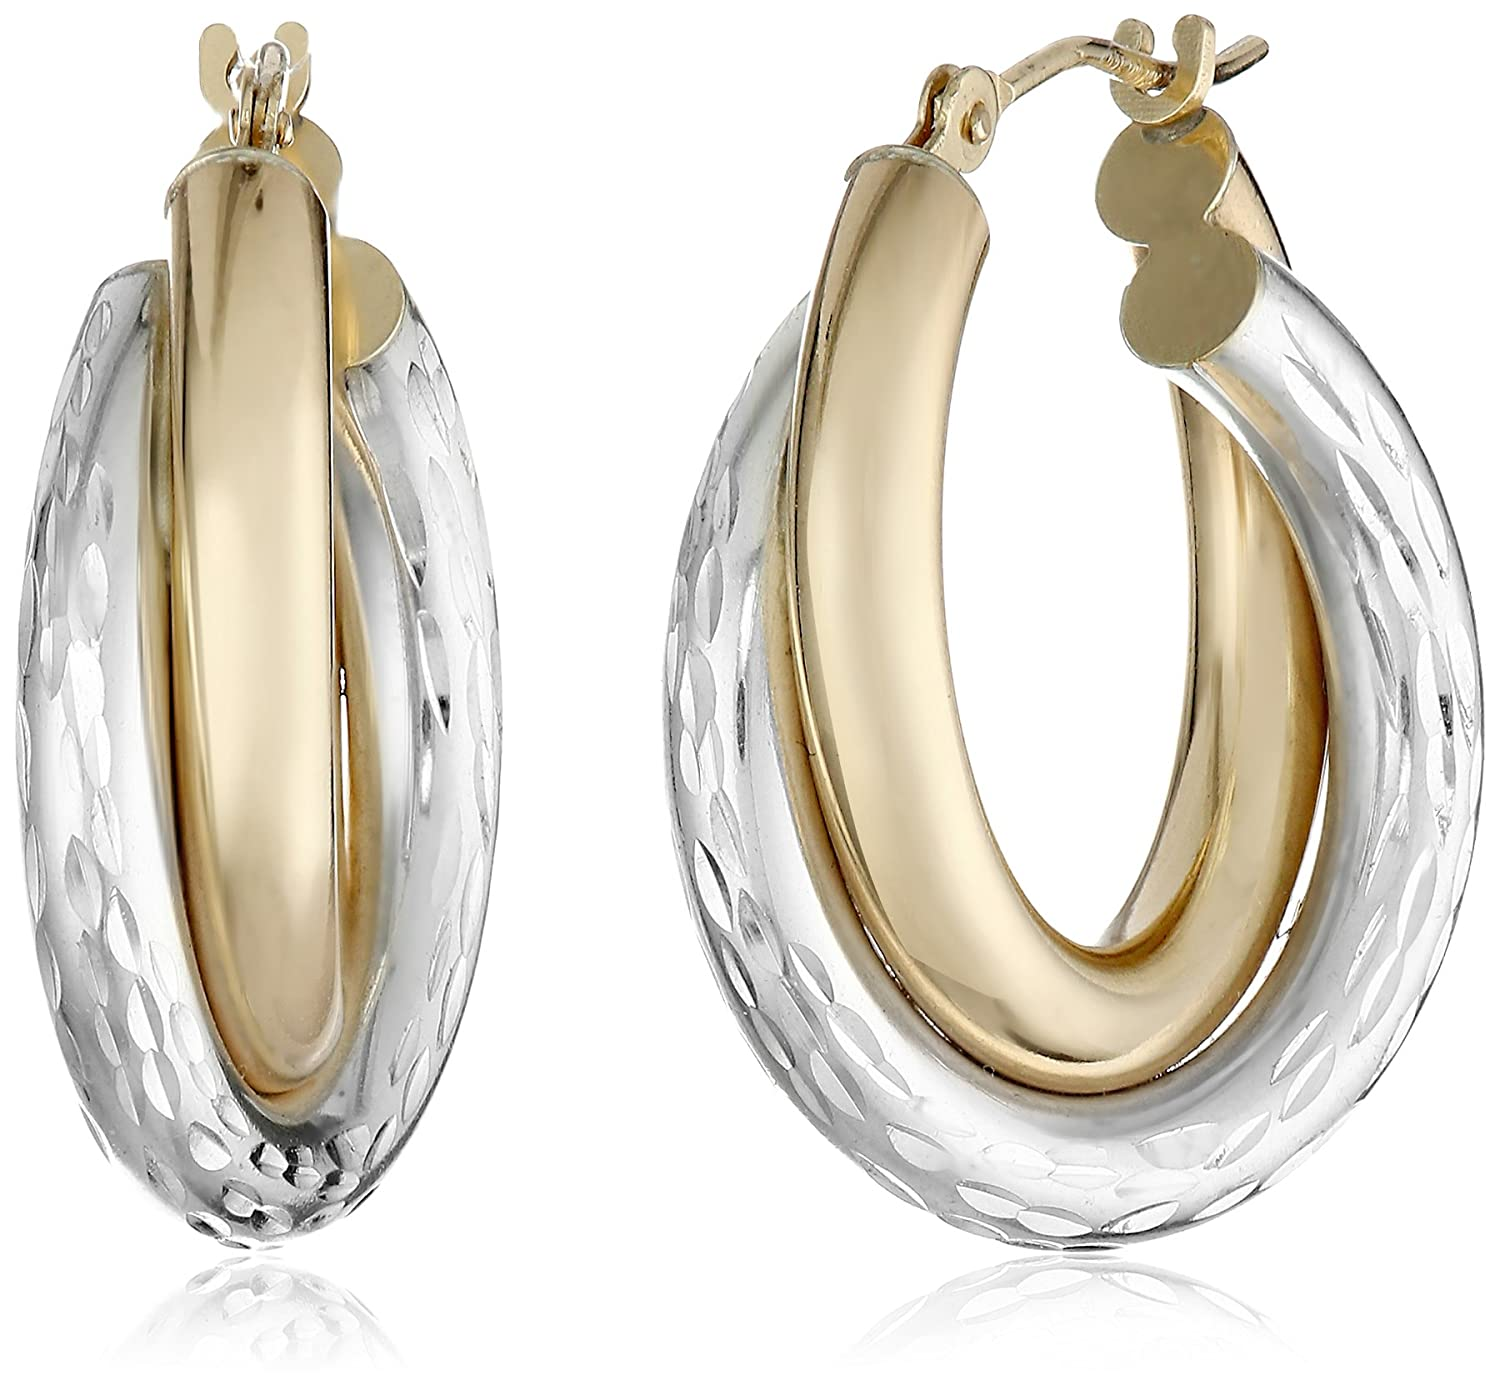 14k Gold-Bonded Sterling Silver Two-Tone Hoop Earrings Amazon Collection E14-127AG-2C